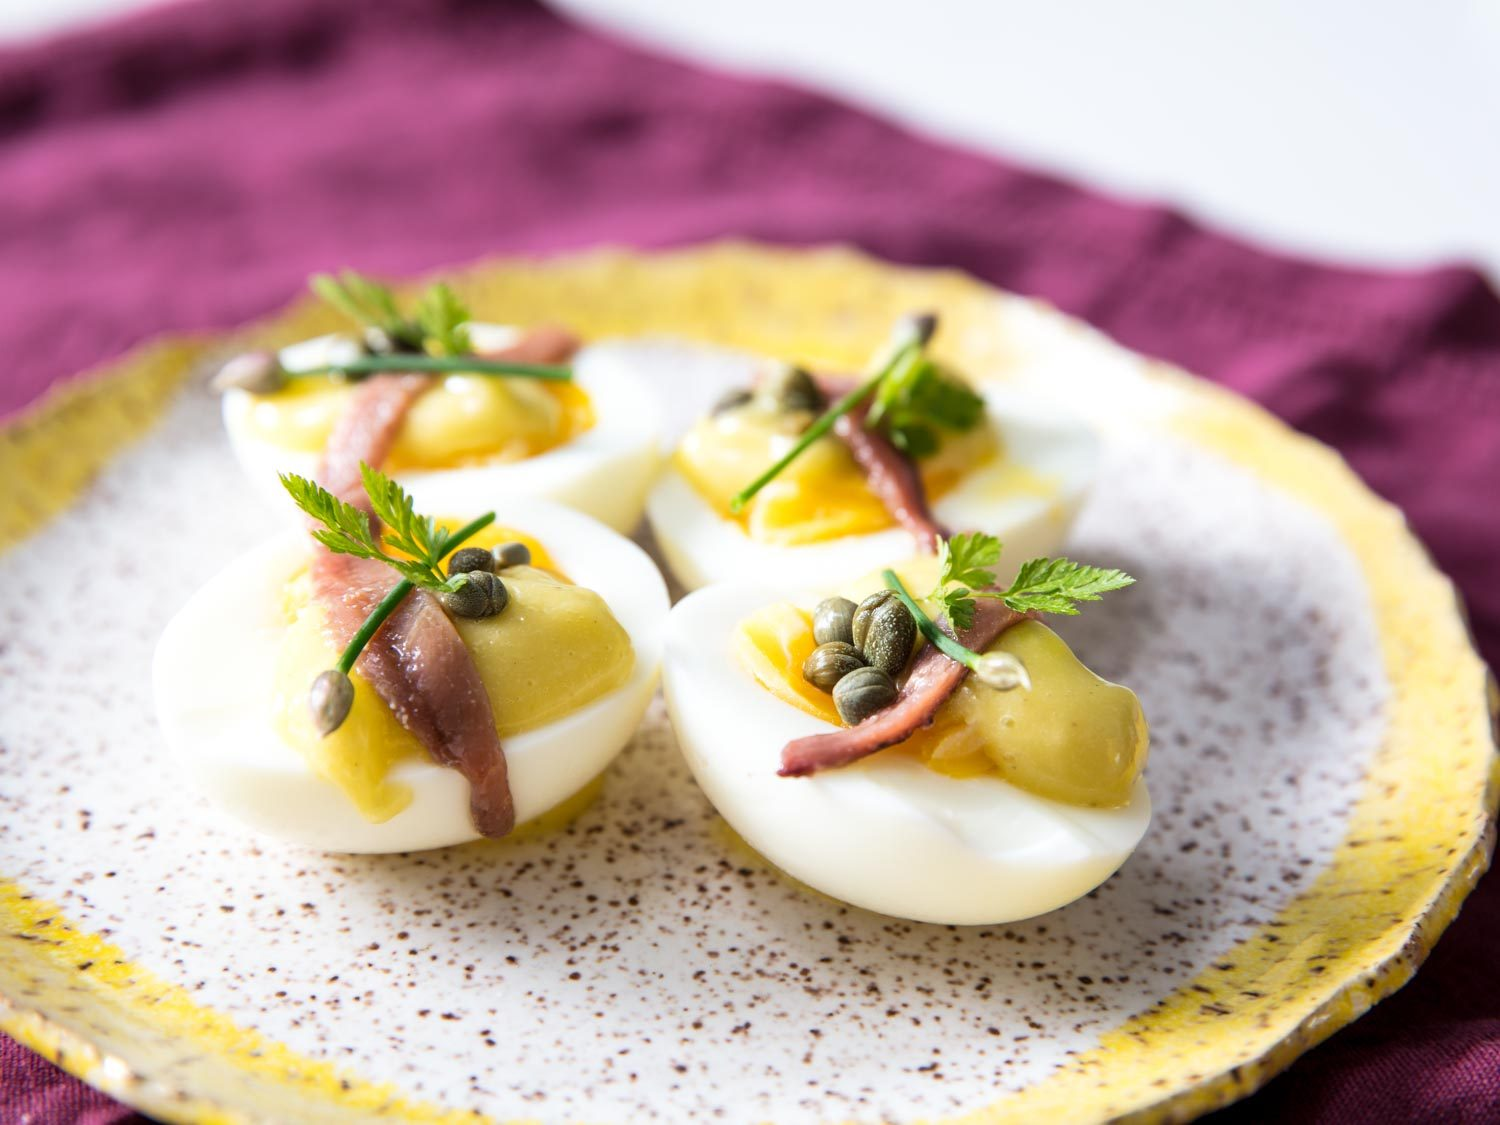 Deconstructed Deviled Eggs With Mayonnaise, Anchovies, and Capers